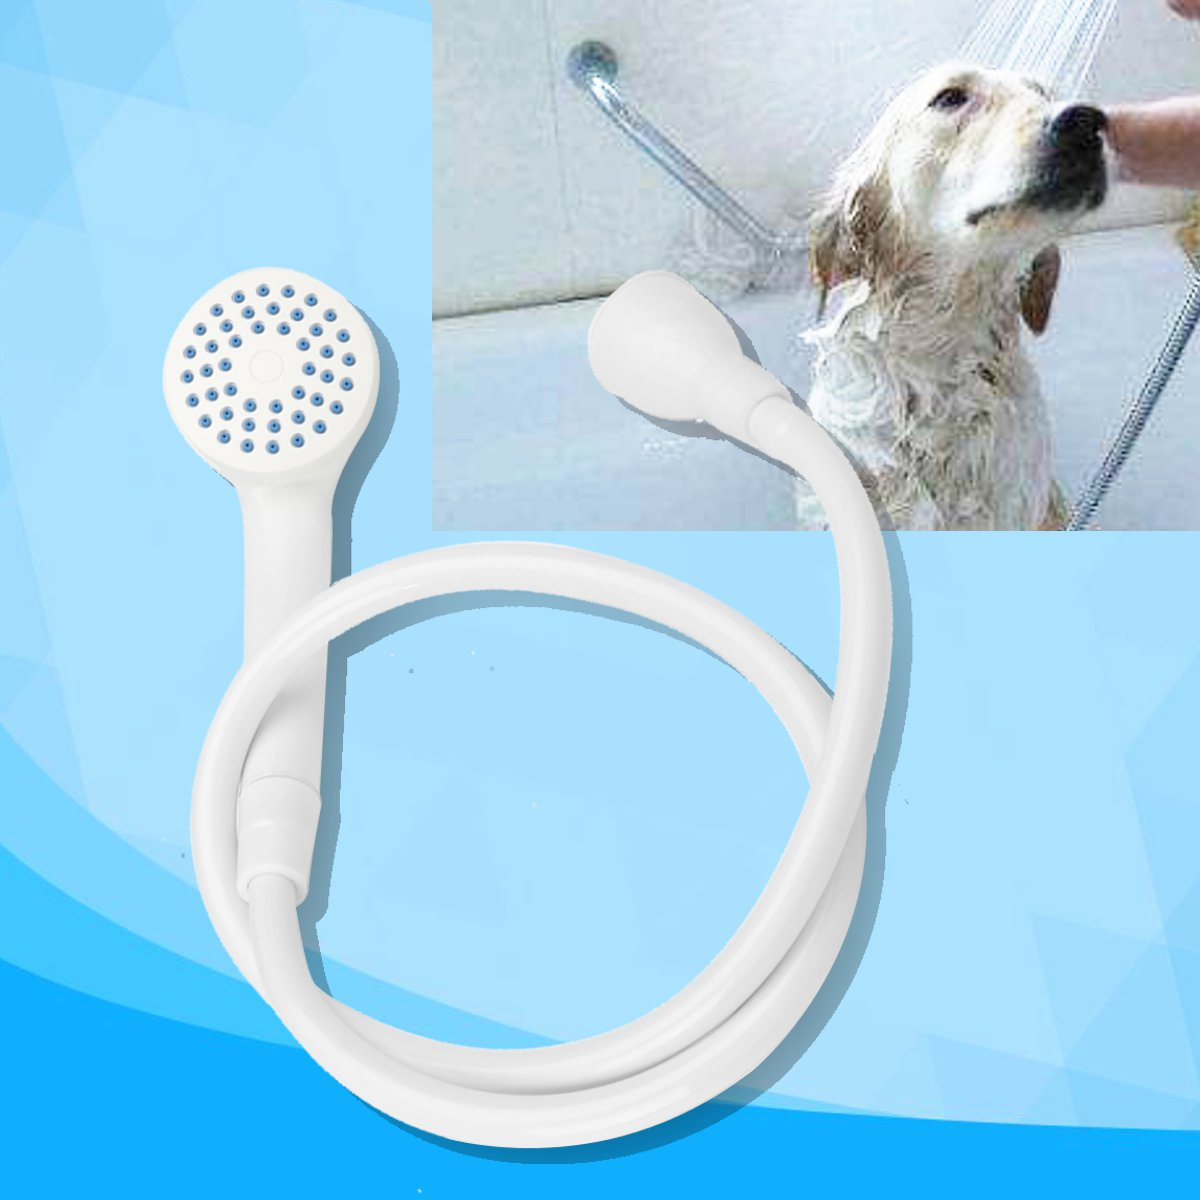 Dog Shower Handheld Protable Spray Hose Bath Tub Sink Faucet ...